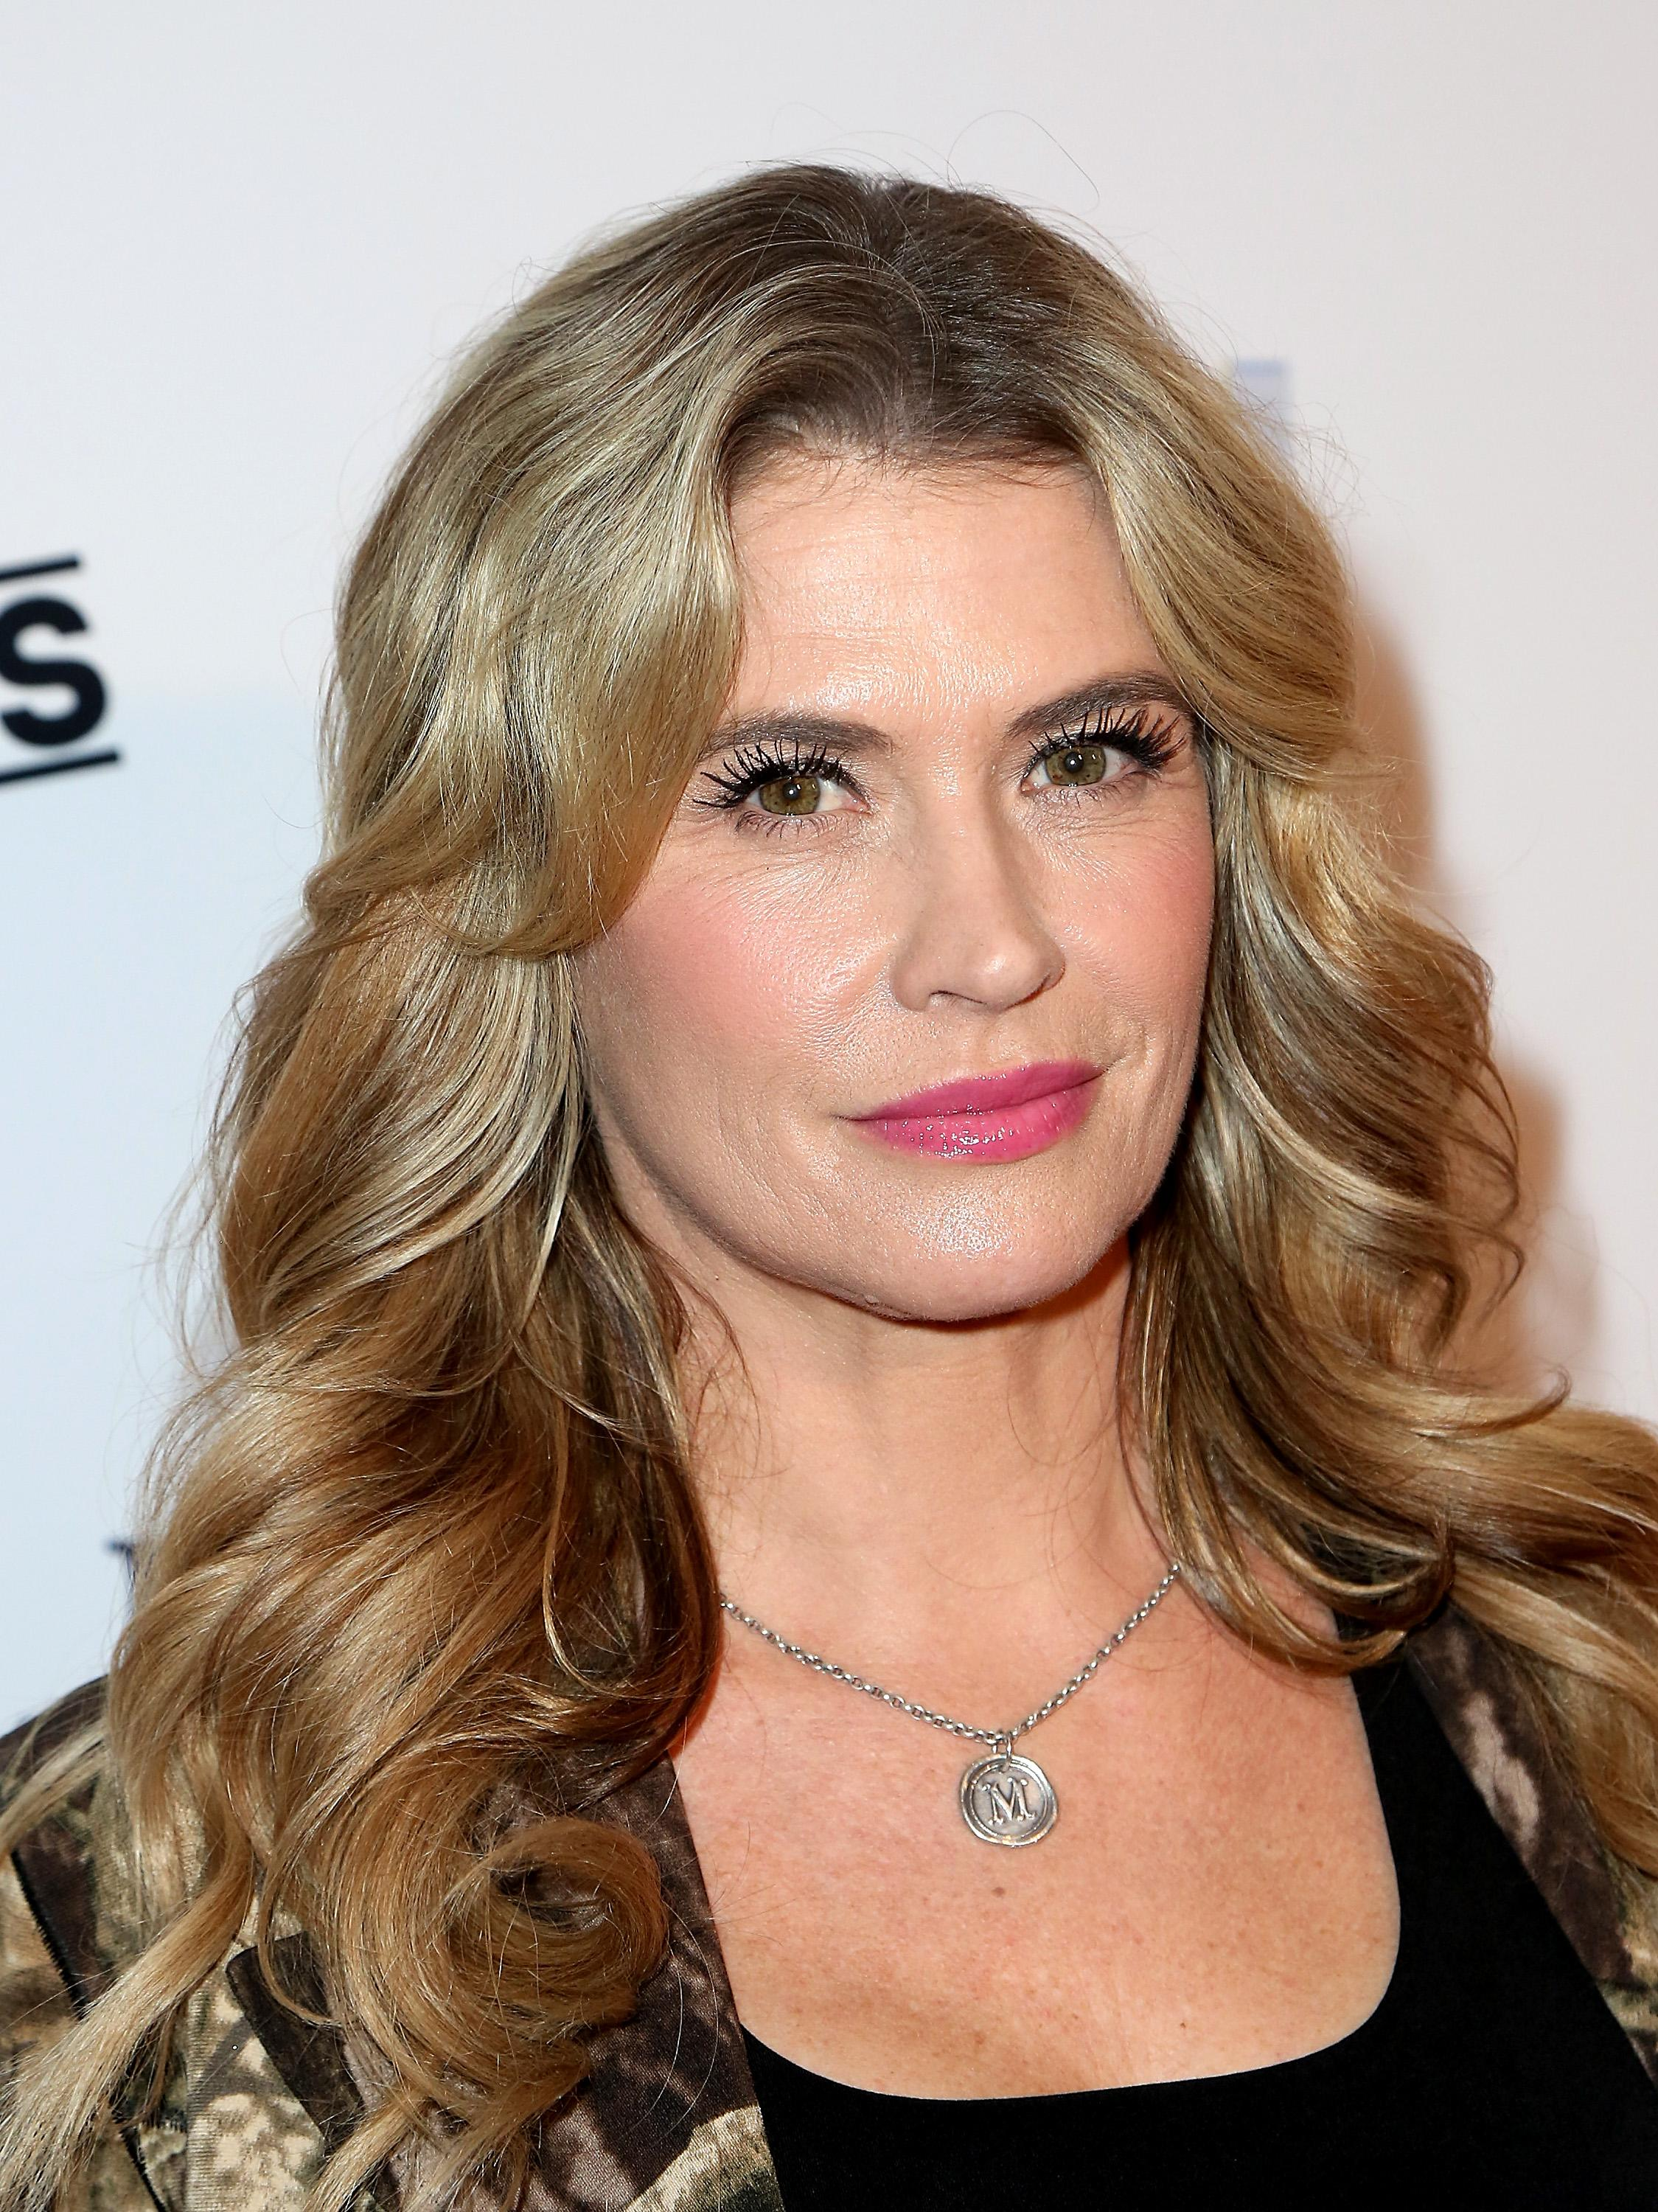 Kristy Swanson Pictures and Photos | Fandango |Kristy Swanson Weight Gain